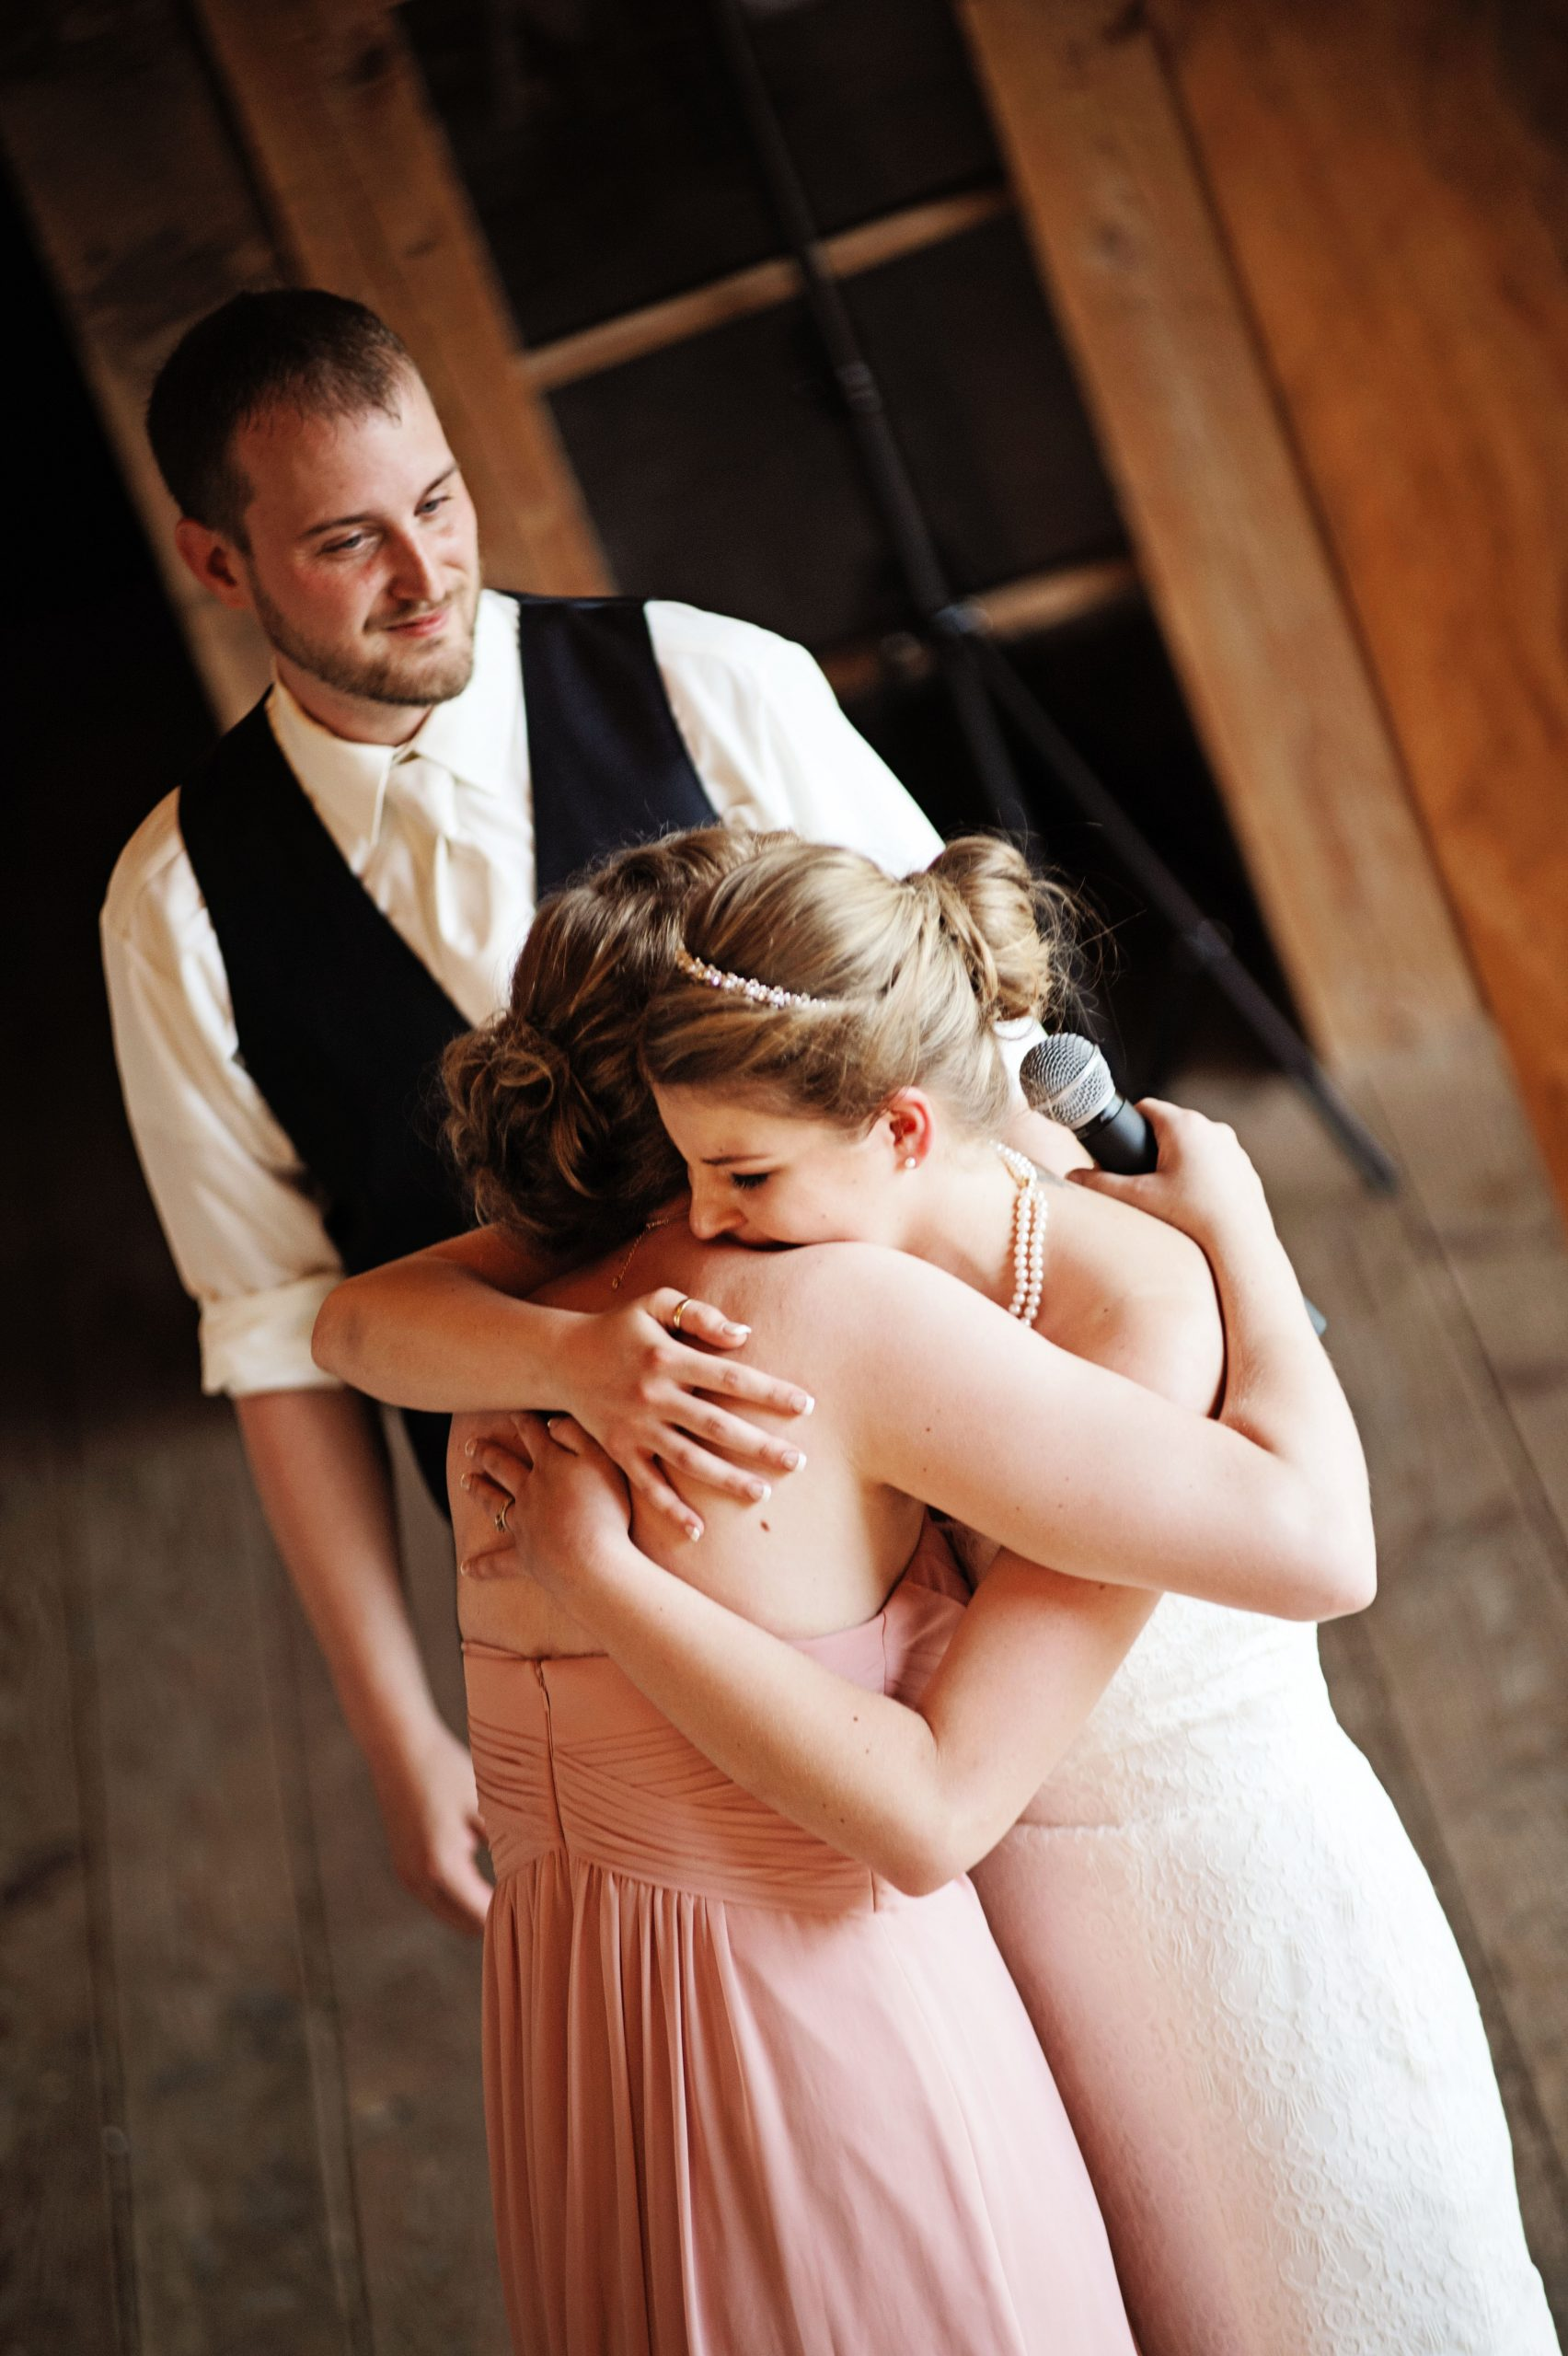 The bride shares a hug with the maid of honor as she finishes her speech at Lakeview Farms in York, PA. Lovefusion Photography is behind the lens of this intimate moment. Featured on Dream Weddings.